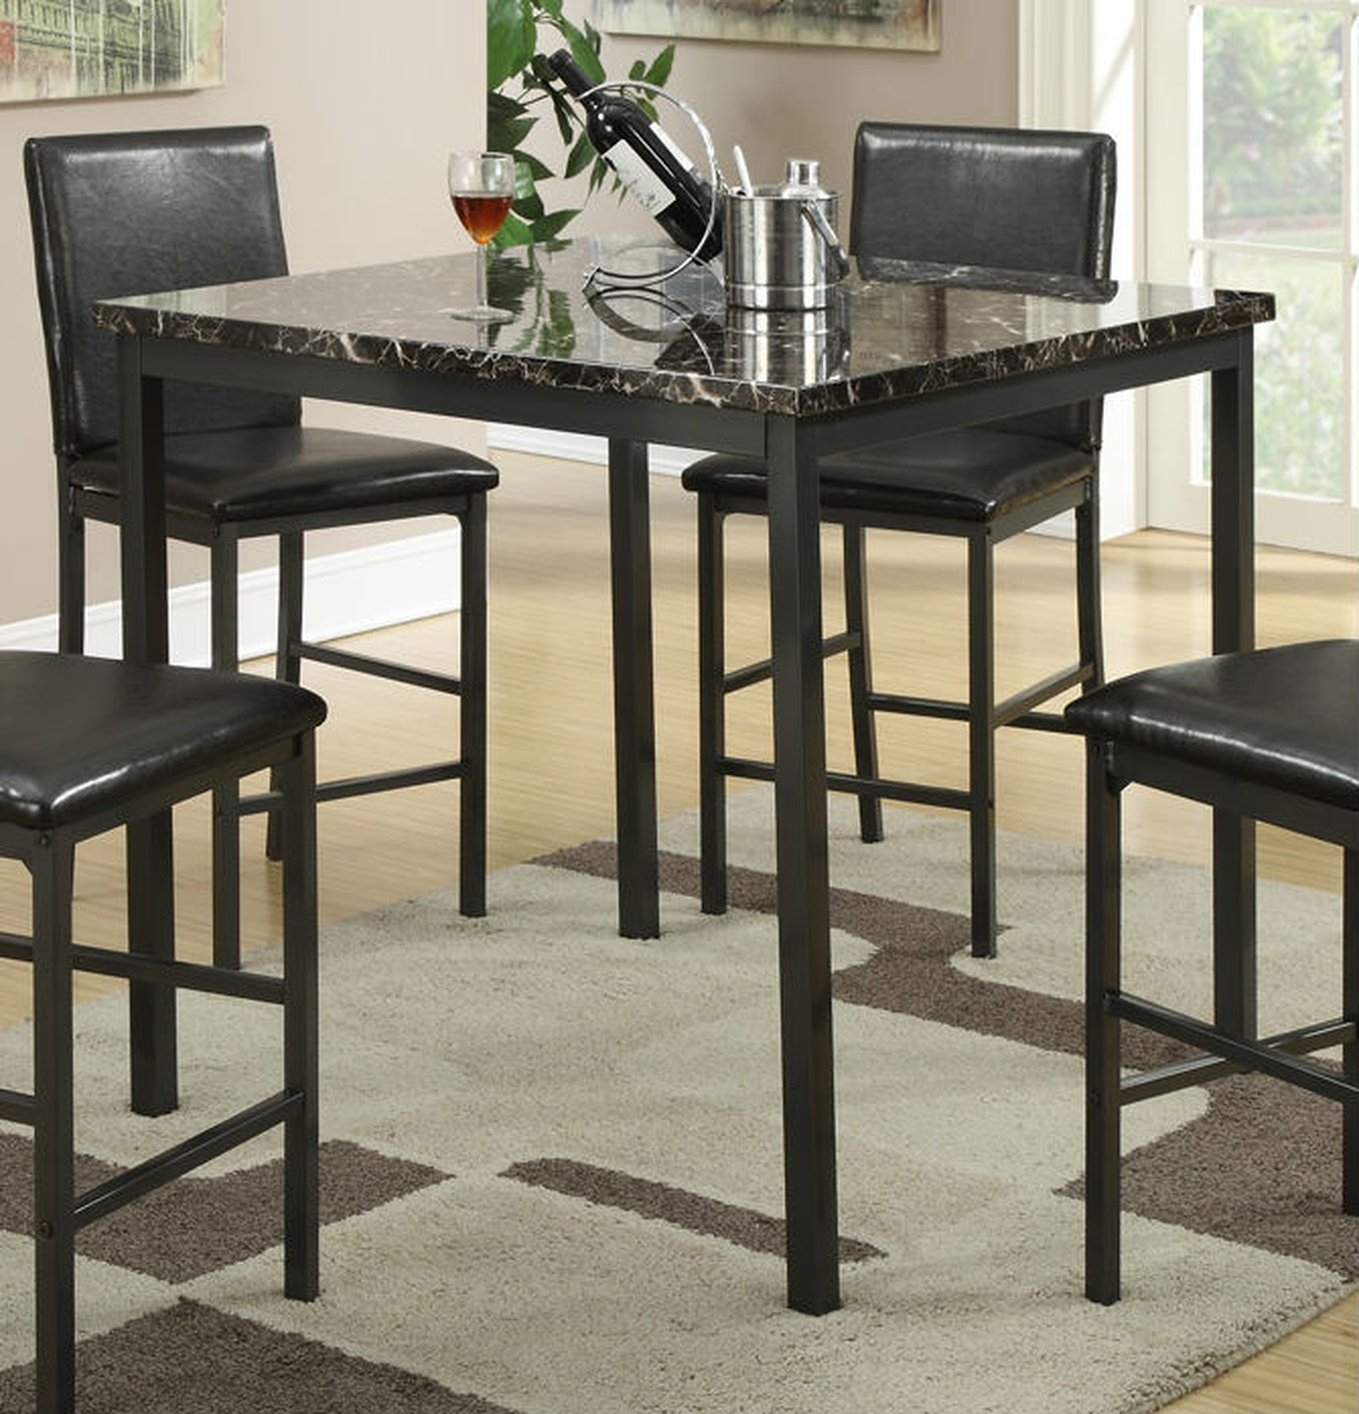 Black Metal Dining Table – Steal A Sofa Furniture Outlet Los Angeles Ca Throughout 2017 Palazzo Rectangle Dining Tables (View 15 of 20)